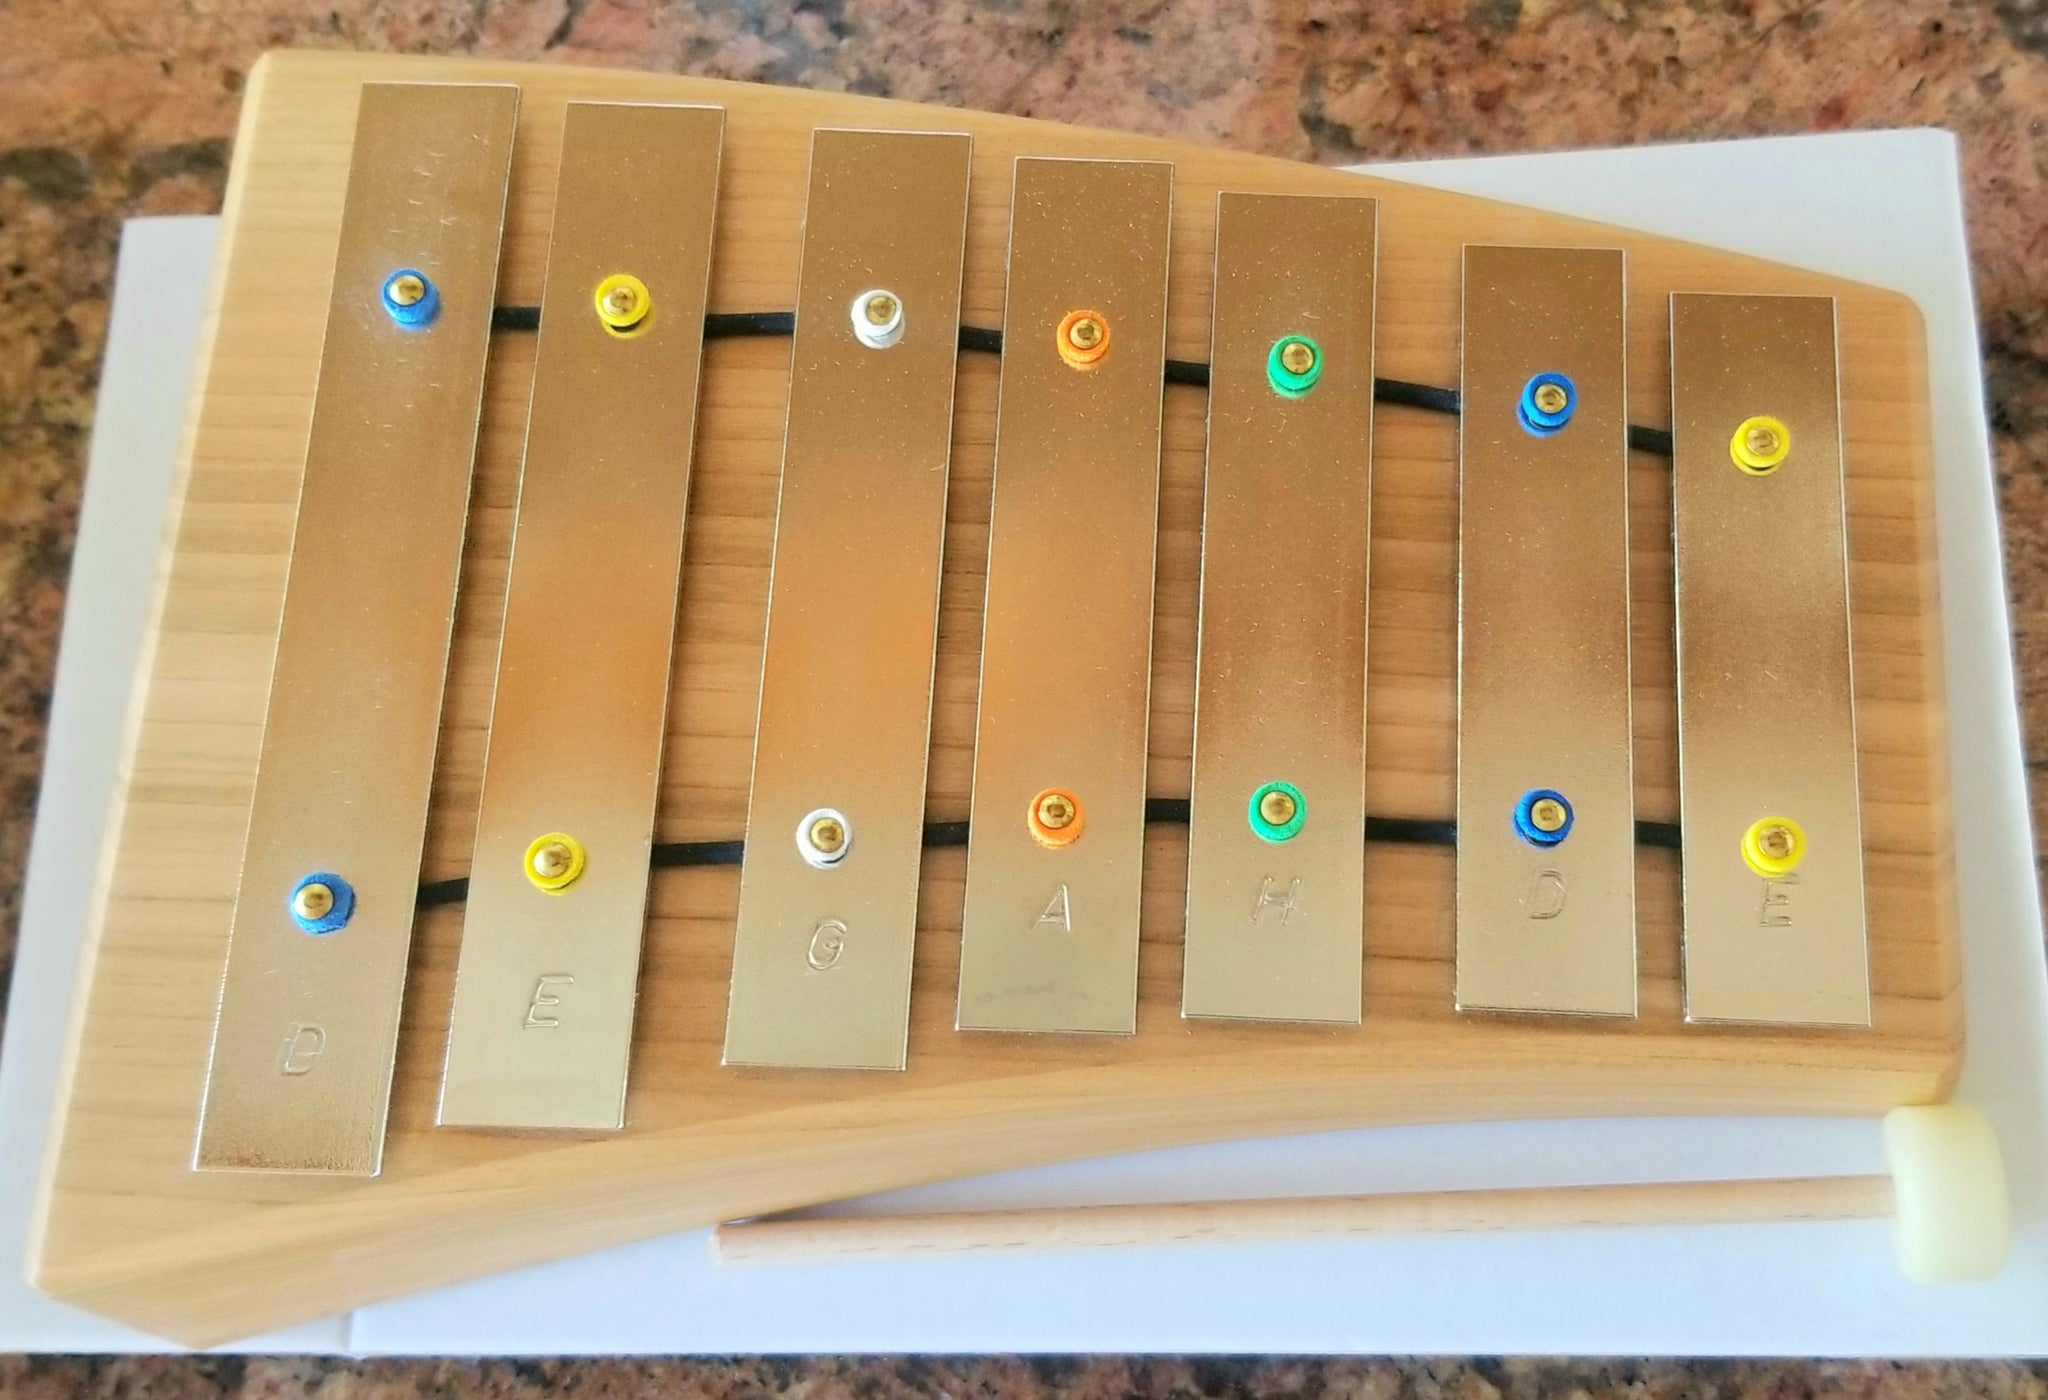 Choroi Carillon pentatonic Glockenspiel made from steel - 7 tone